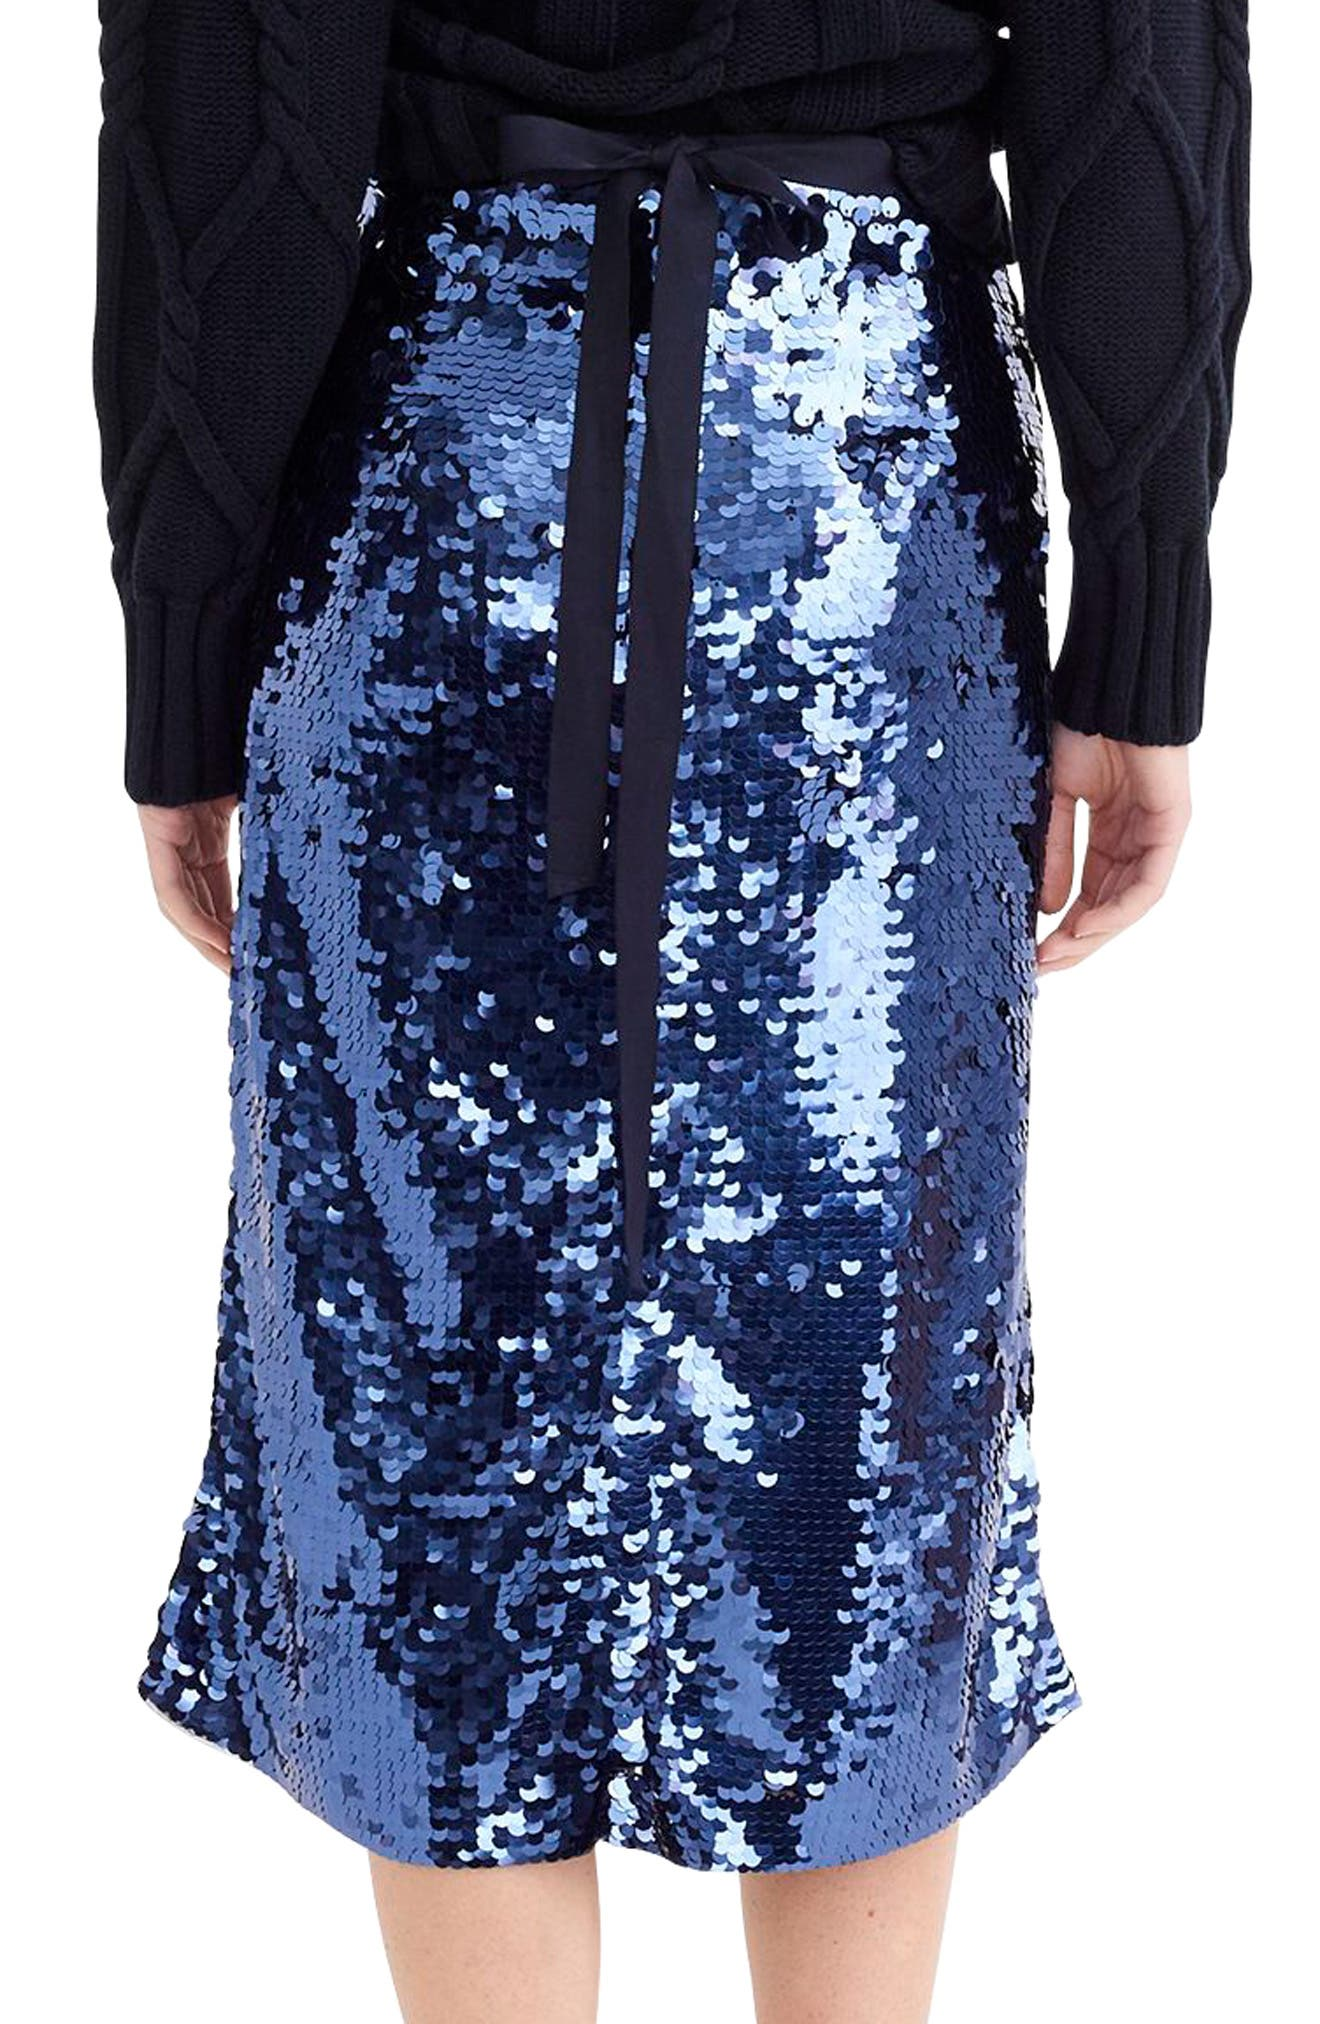 Sequin Midi Skirt with Tie,                             Alternate thumbnail 2, color,                             NAVY